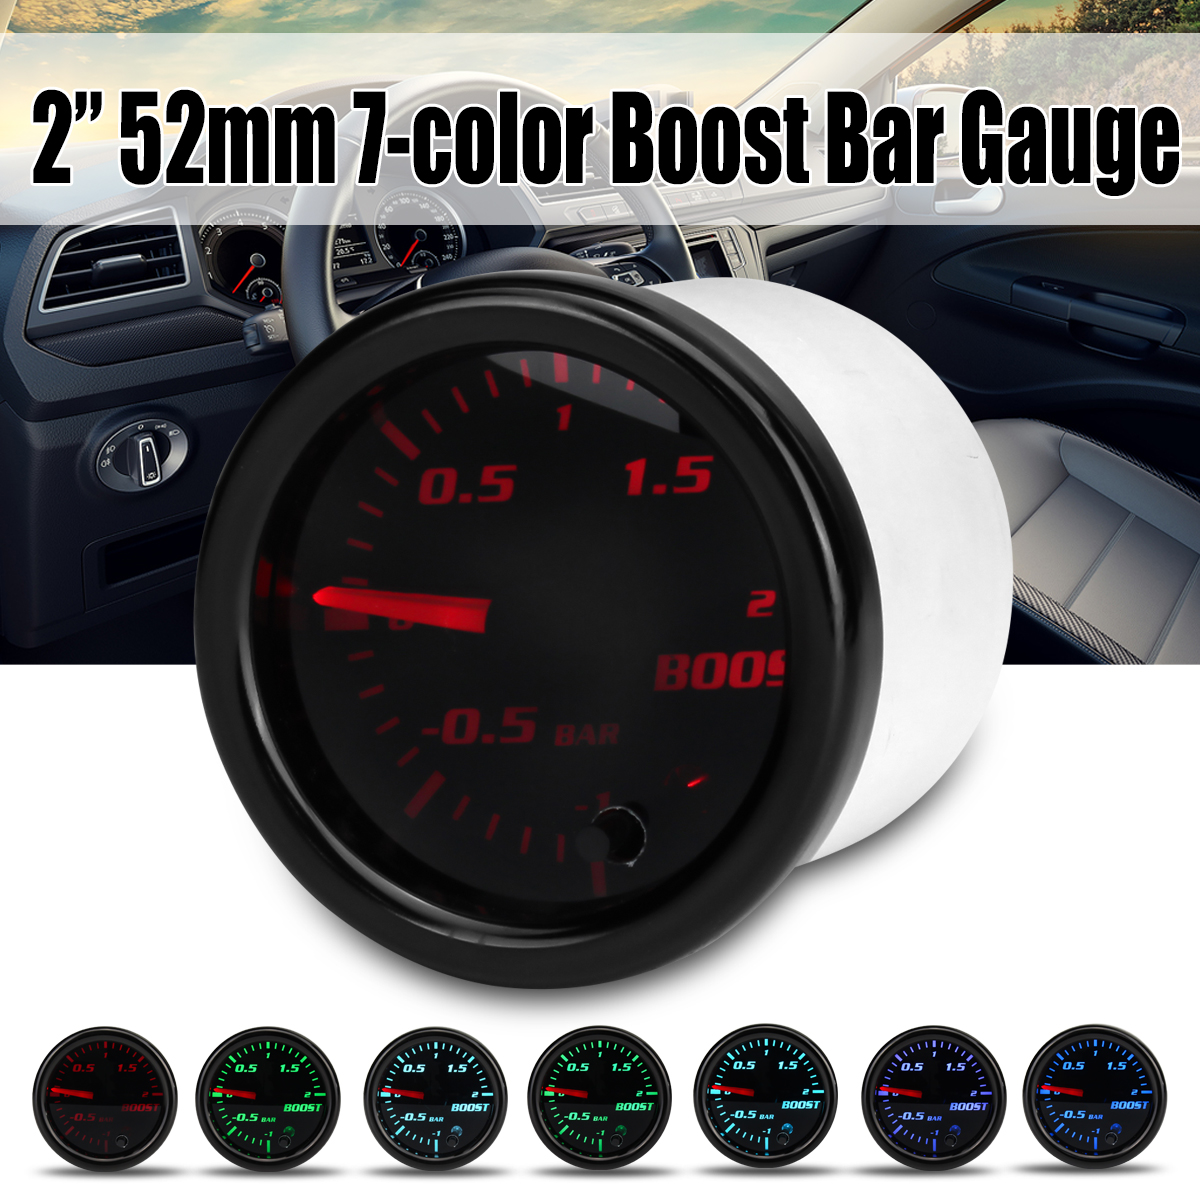 12V 2 zoll 52mm Turbo Boost Gauge Vakuum Press Meter-1 ~ 2 Bar 7 Farbe LED schwarz Len